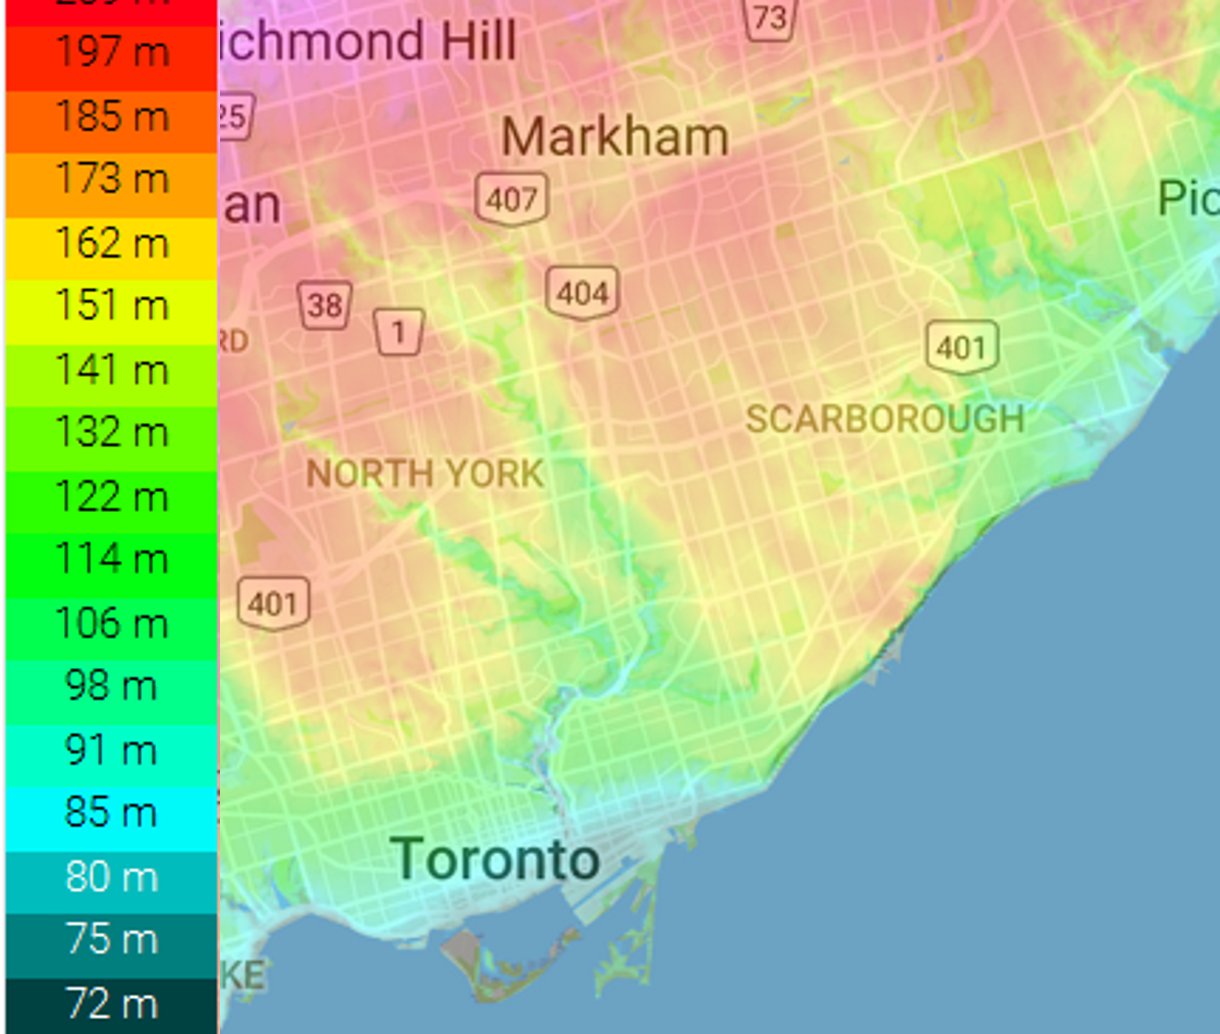 City of Toronto topological map. If waters did rise as in Houston of 50' or 15m, all the blue areas would be flooded.